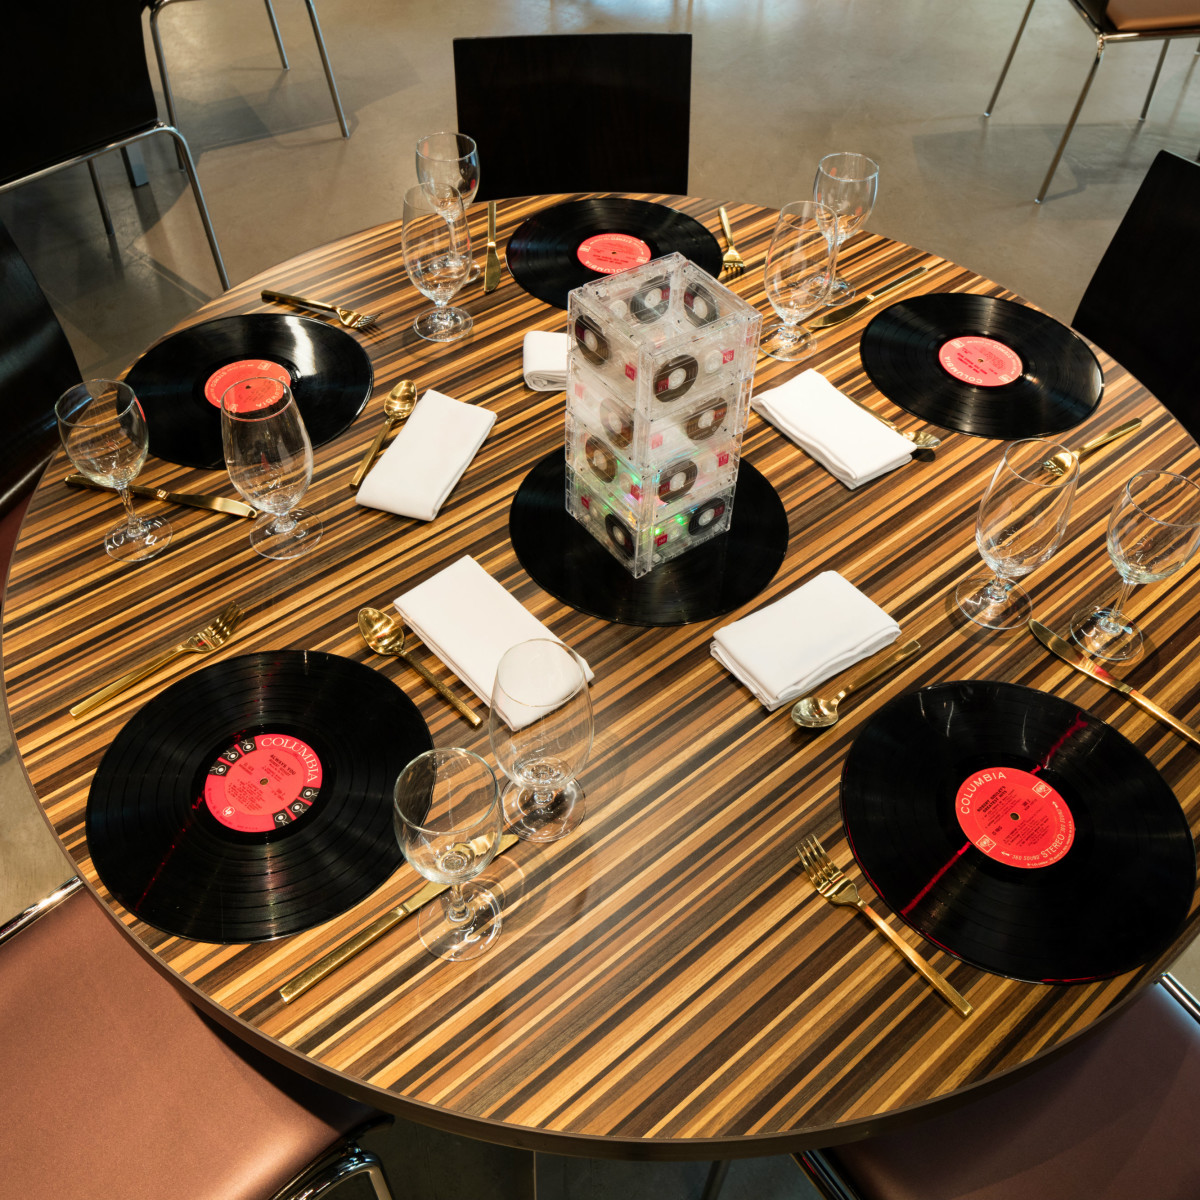 The Reverbery set table